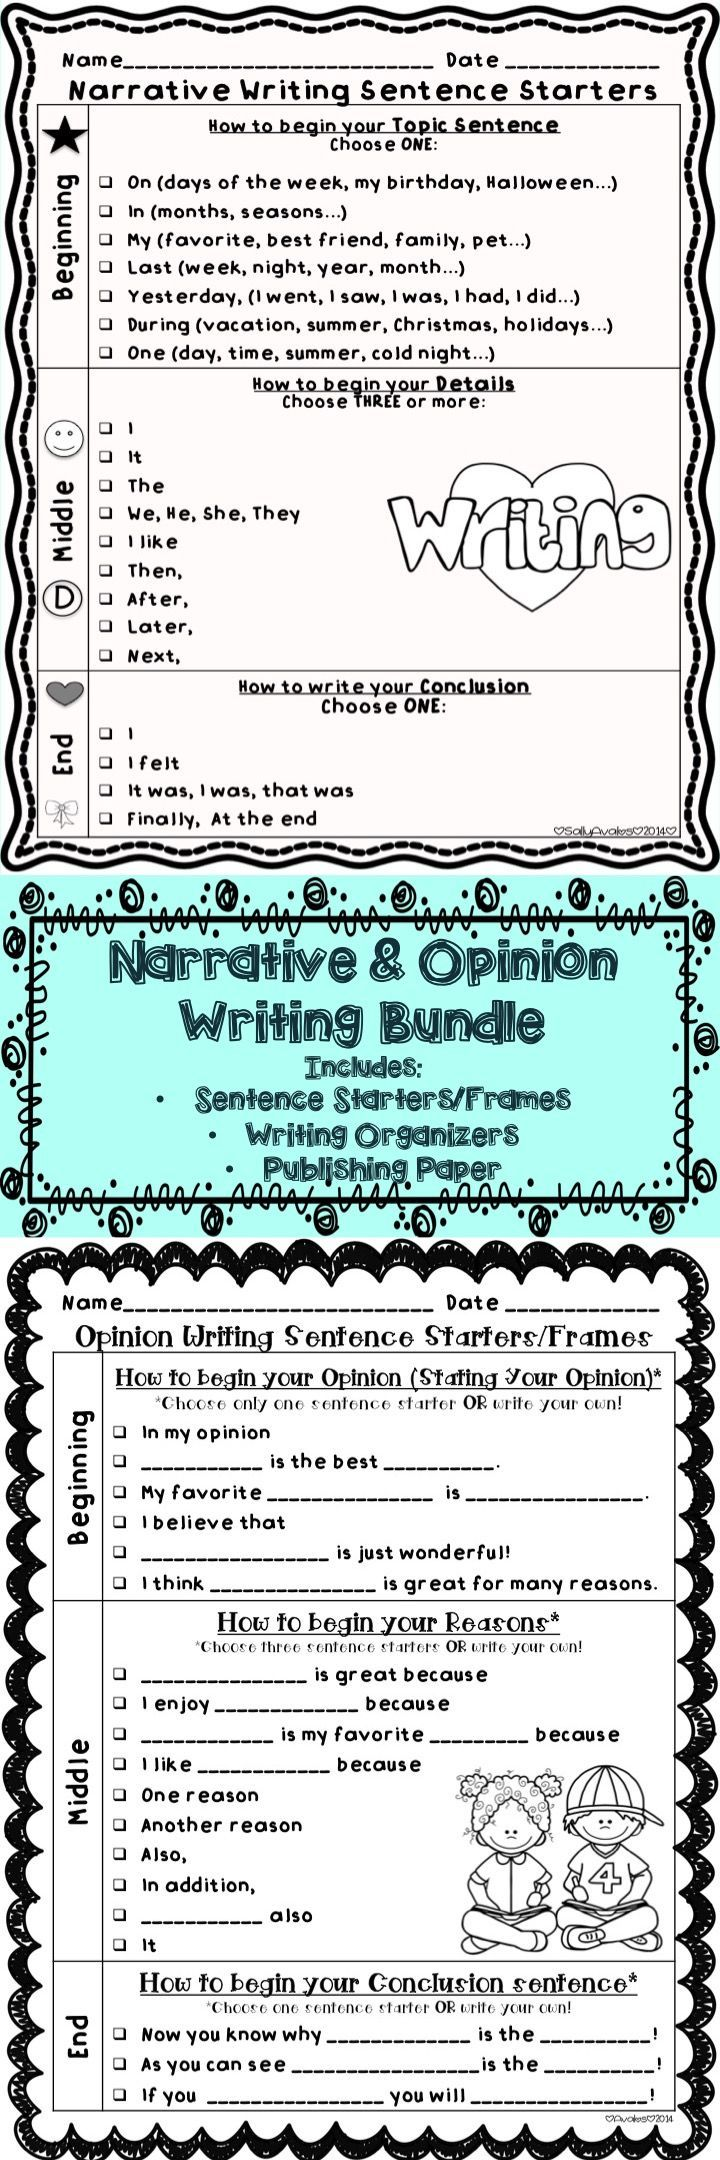 This set of Opinion & Narrative writing sentence starters/frames, graphic organizers, and publishing templates are perfect to help your little writers write opinions and narratives. $: